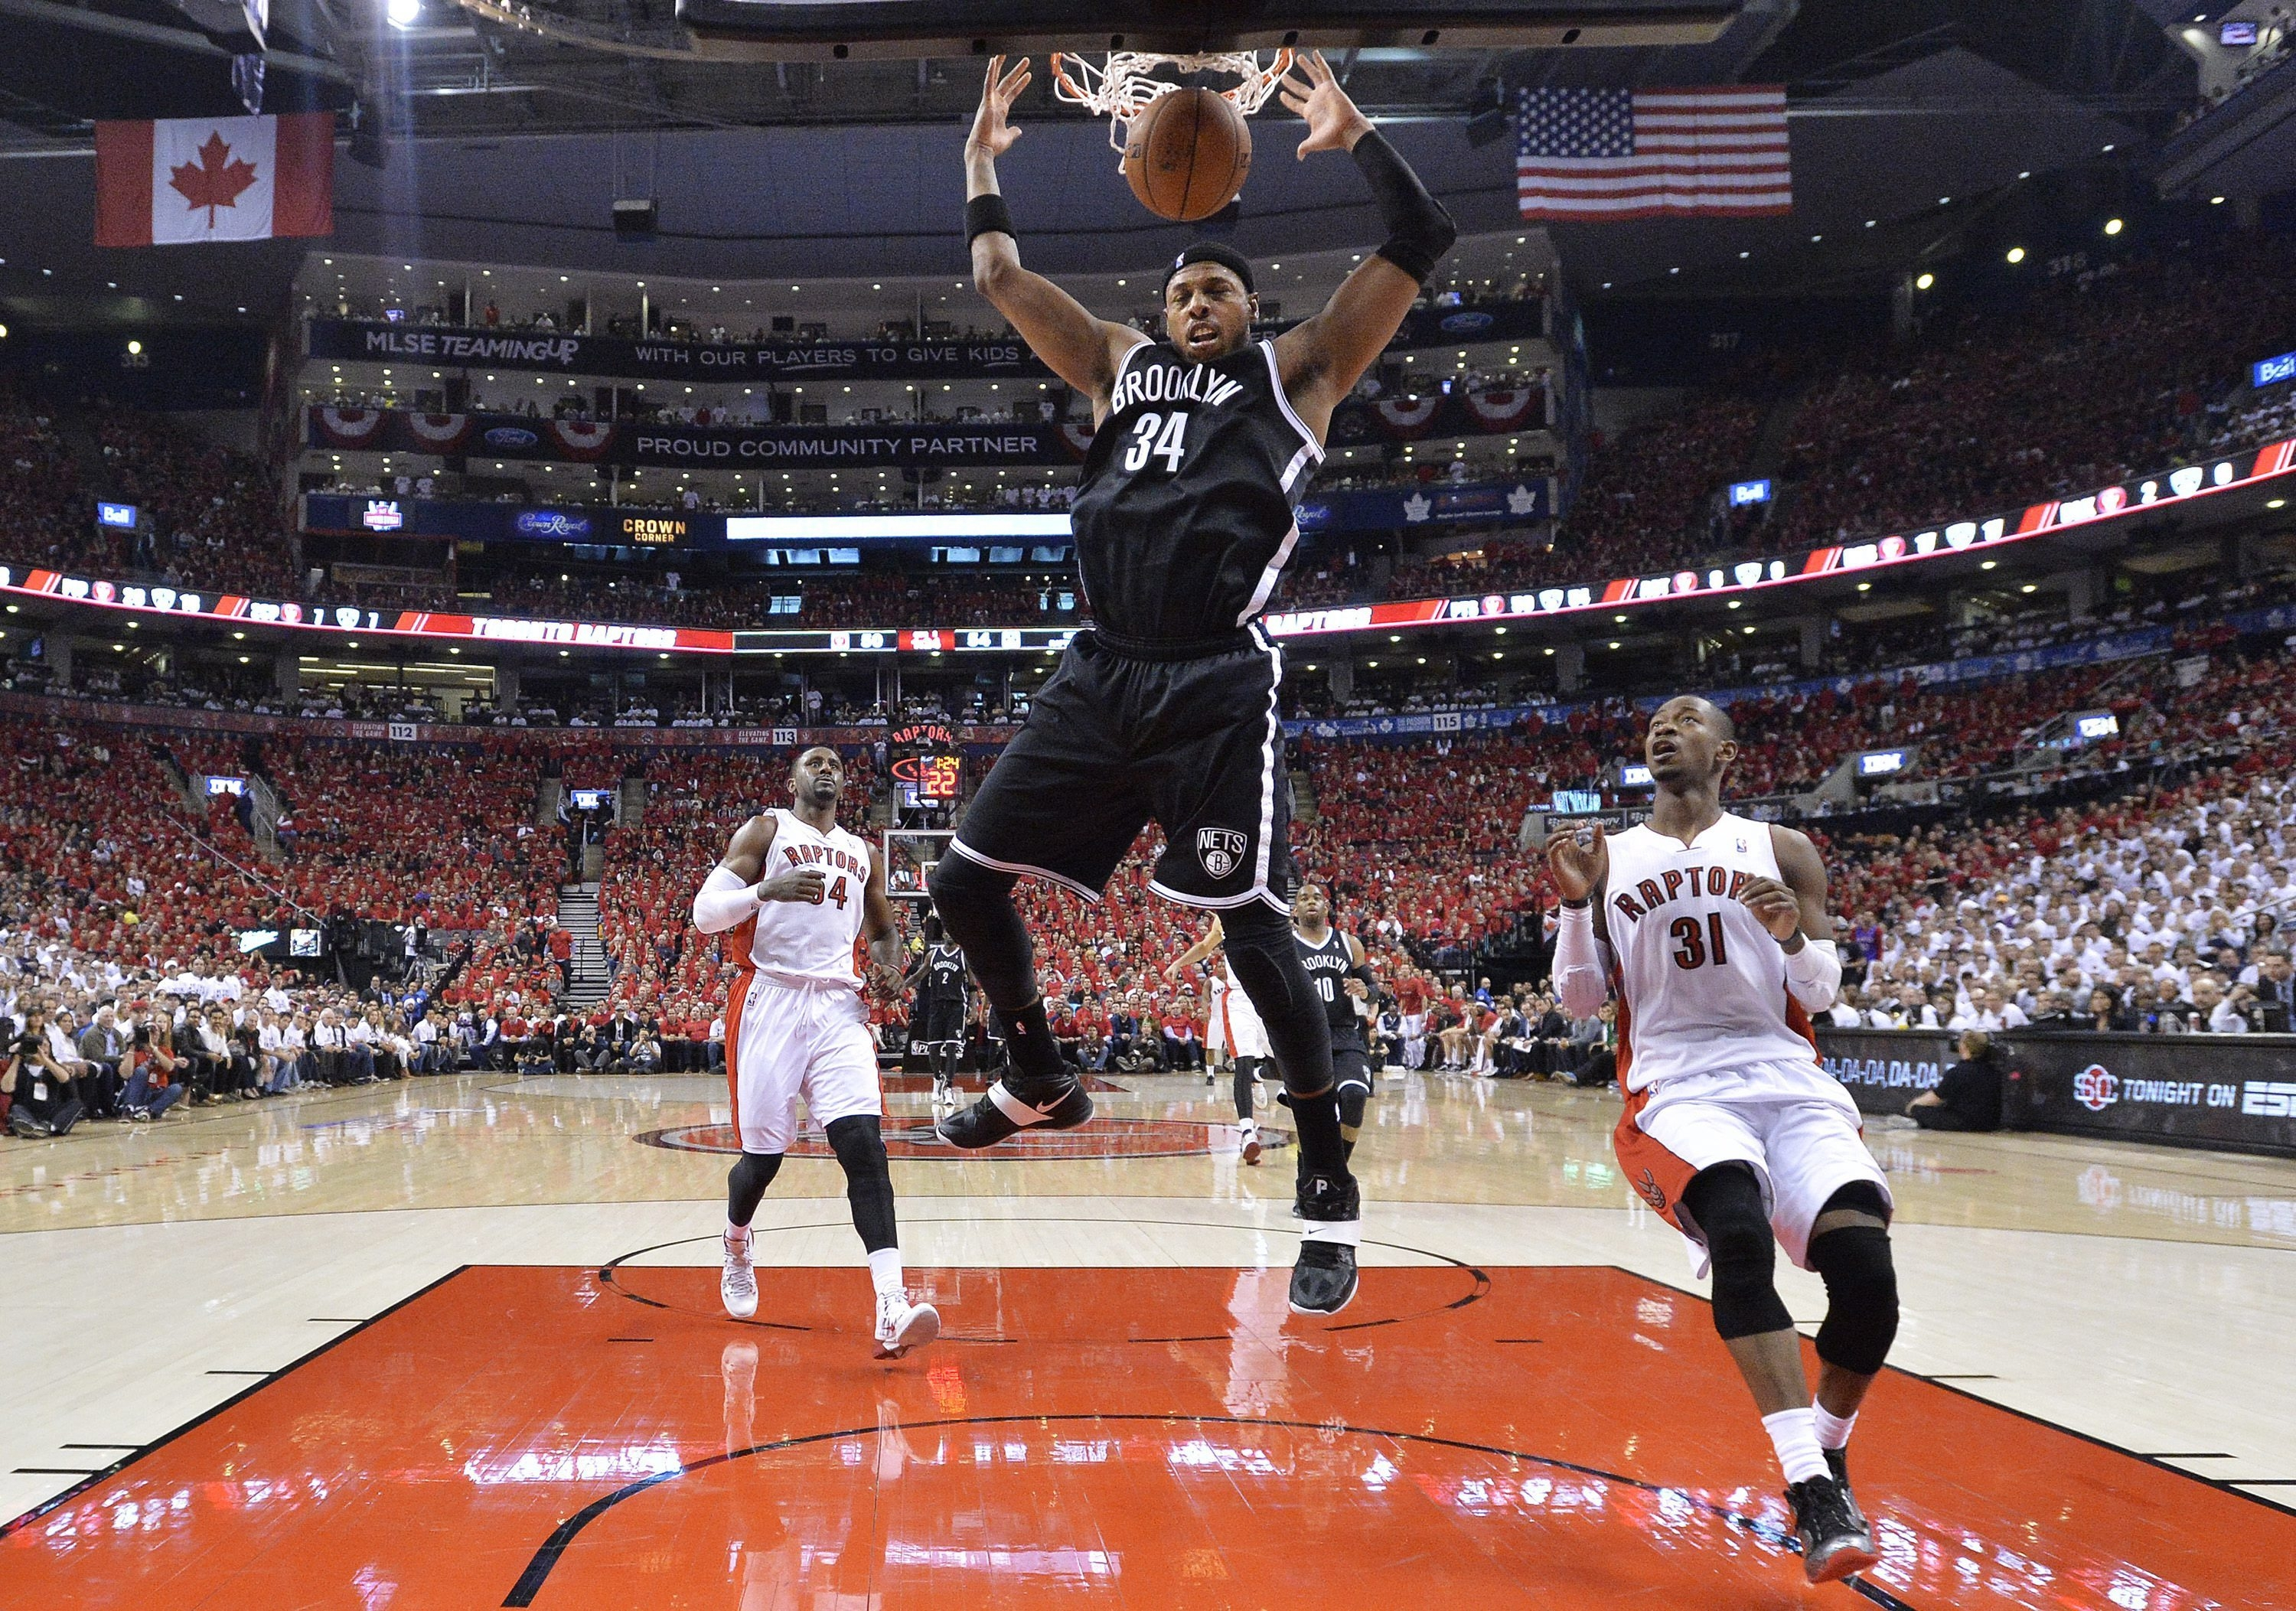 Nets forward Paul Pierce dunks the ball in front of Raptors guard Terrence Ross in Sunday's Game Seven at Air Canada Centre.